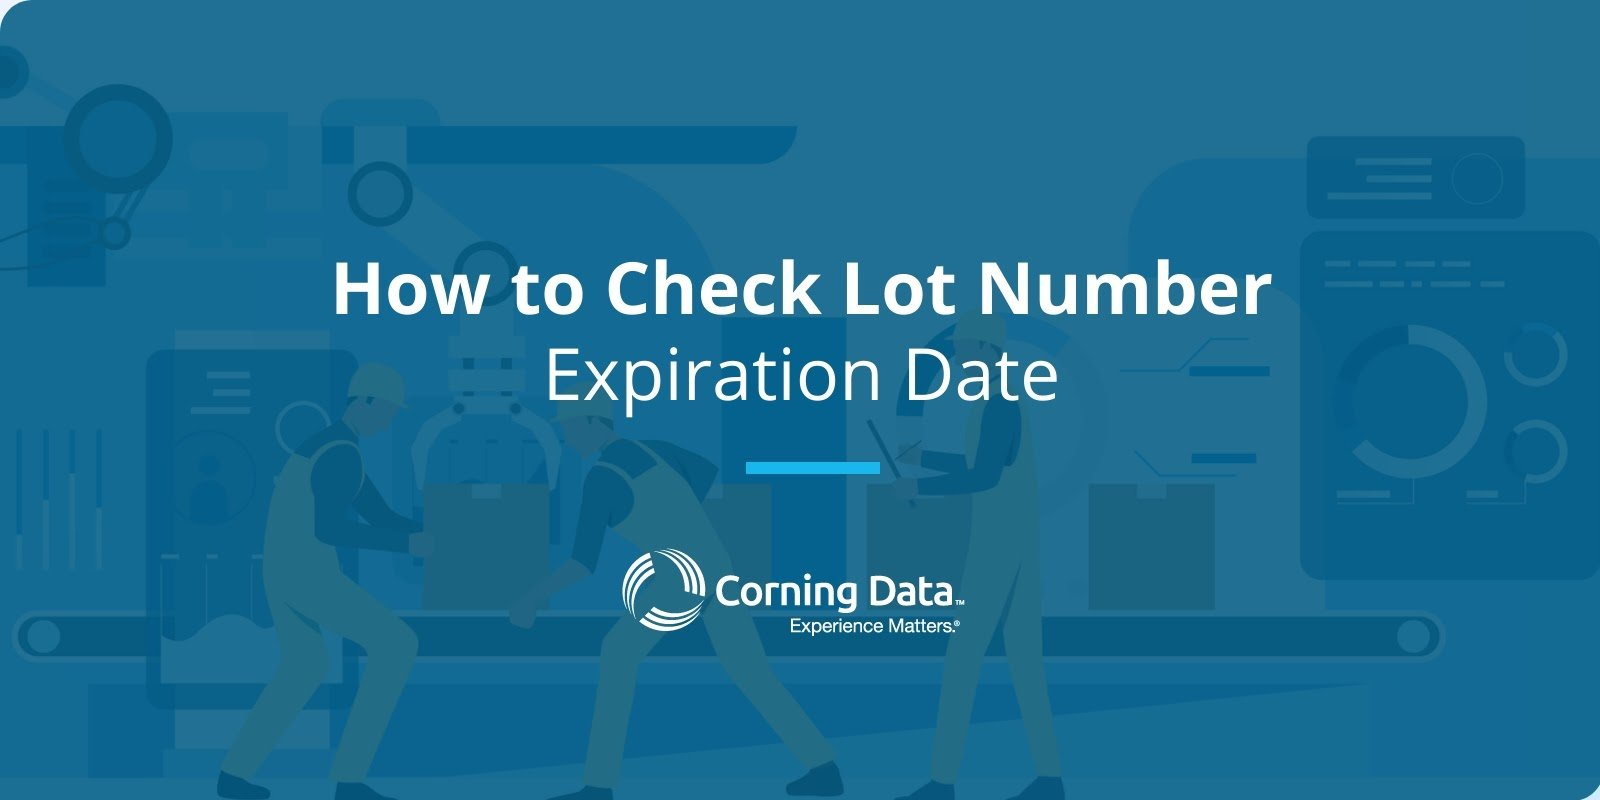 How to Check Lot Number Expiration Date